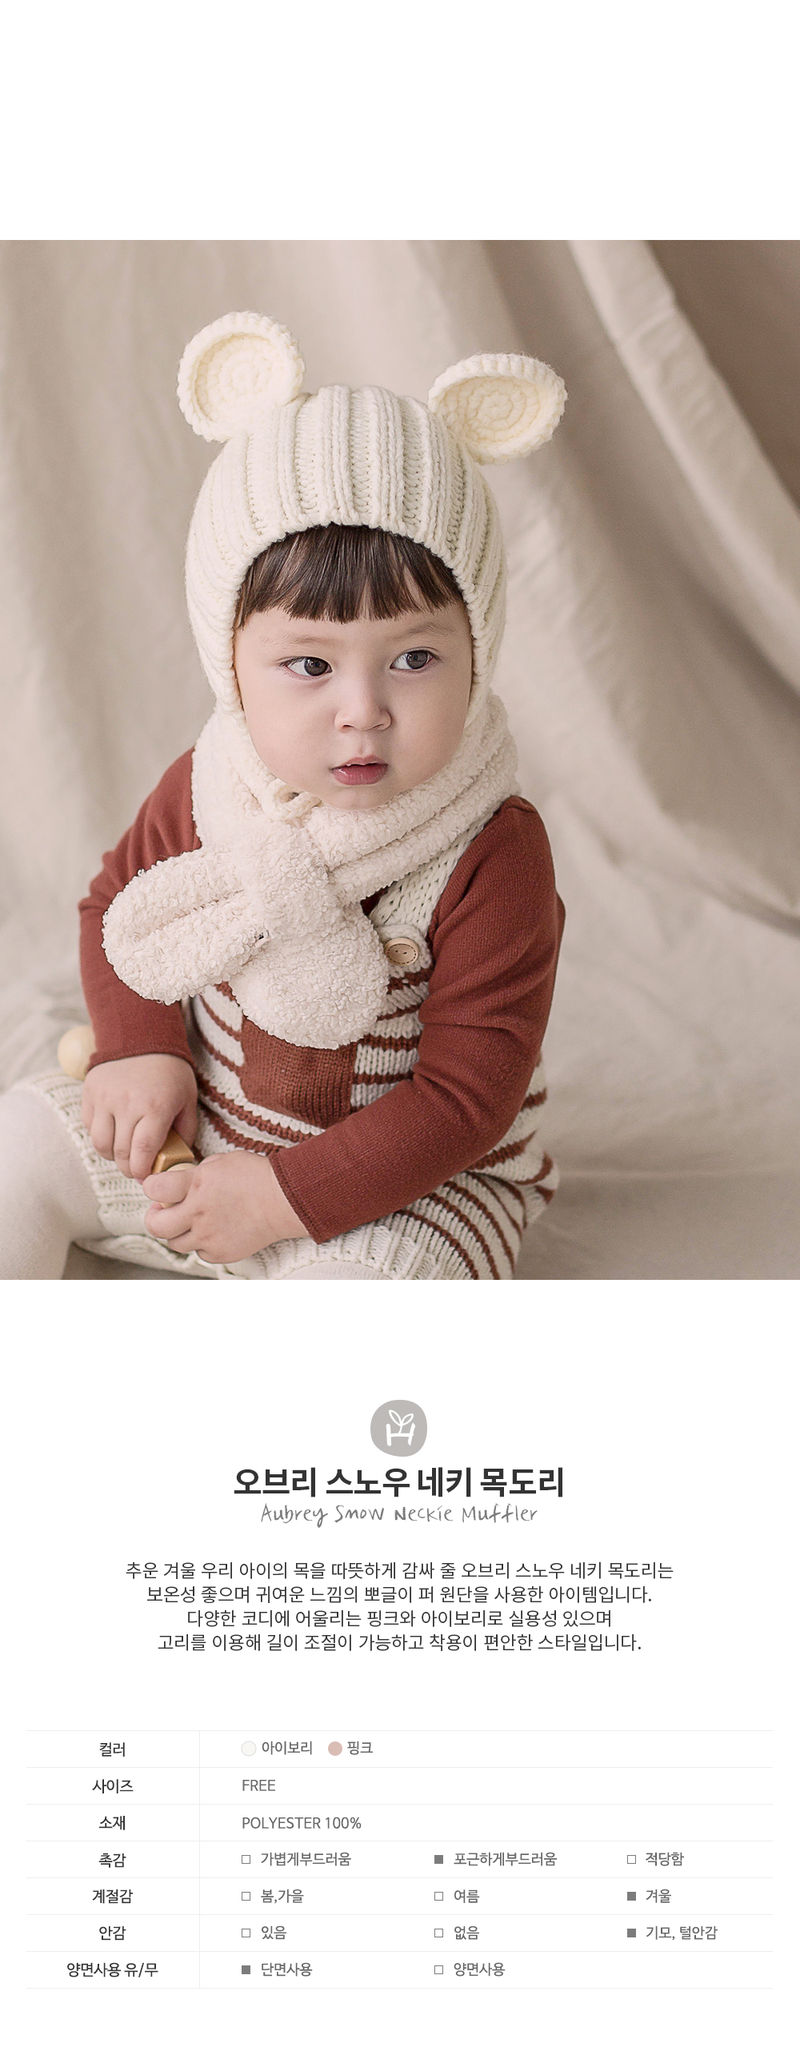 HAPPY PRINCE - Korean Children Fashion - #Kfashion4kids - Aubrey Snow Neckie Muffler